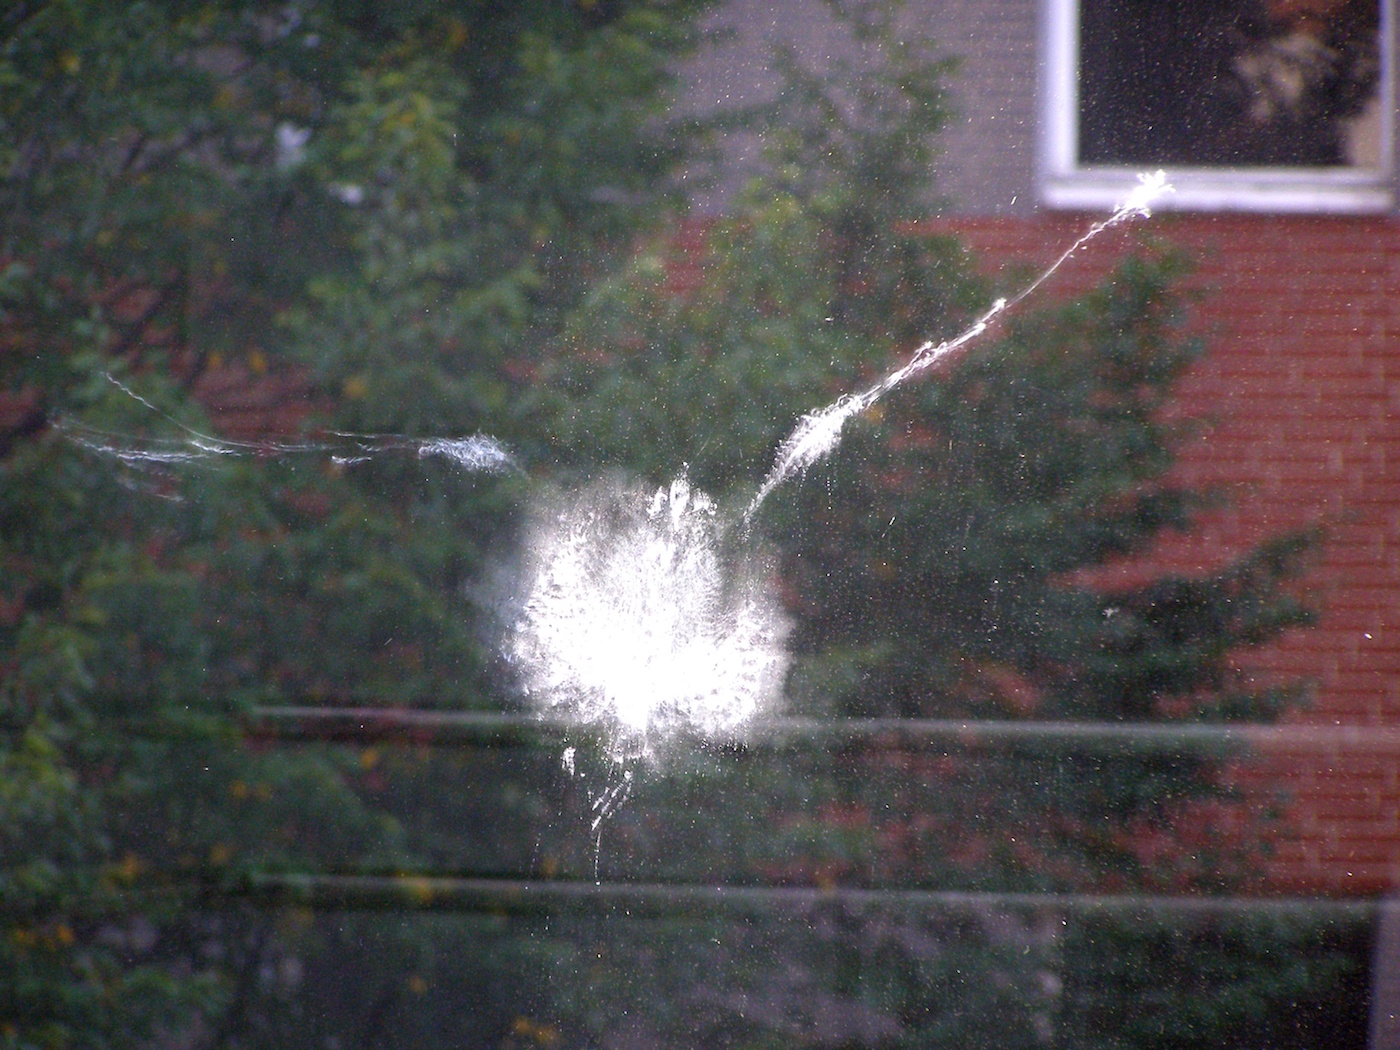 The imprint of a bird that crashed into a window (photo by Erich Ferdinand/Wikimedia)